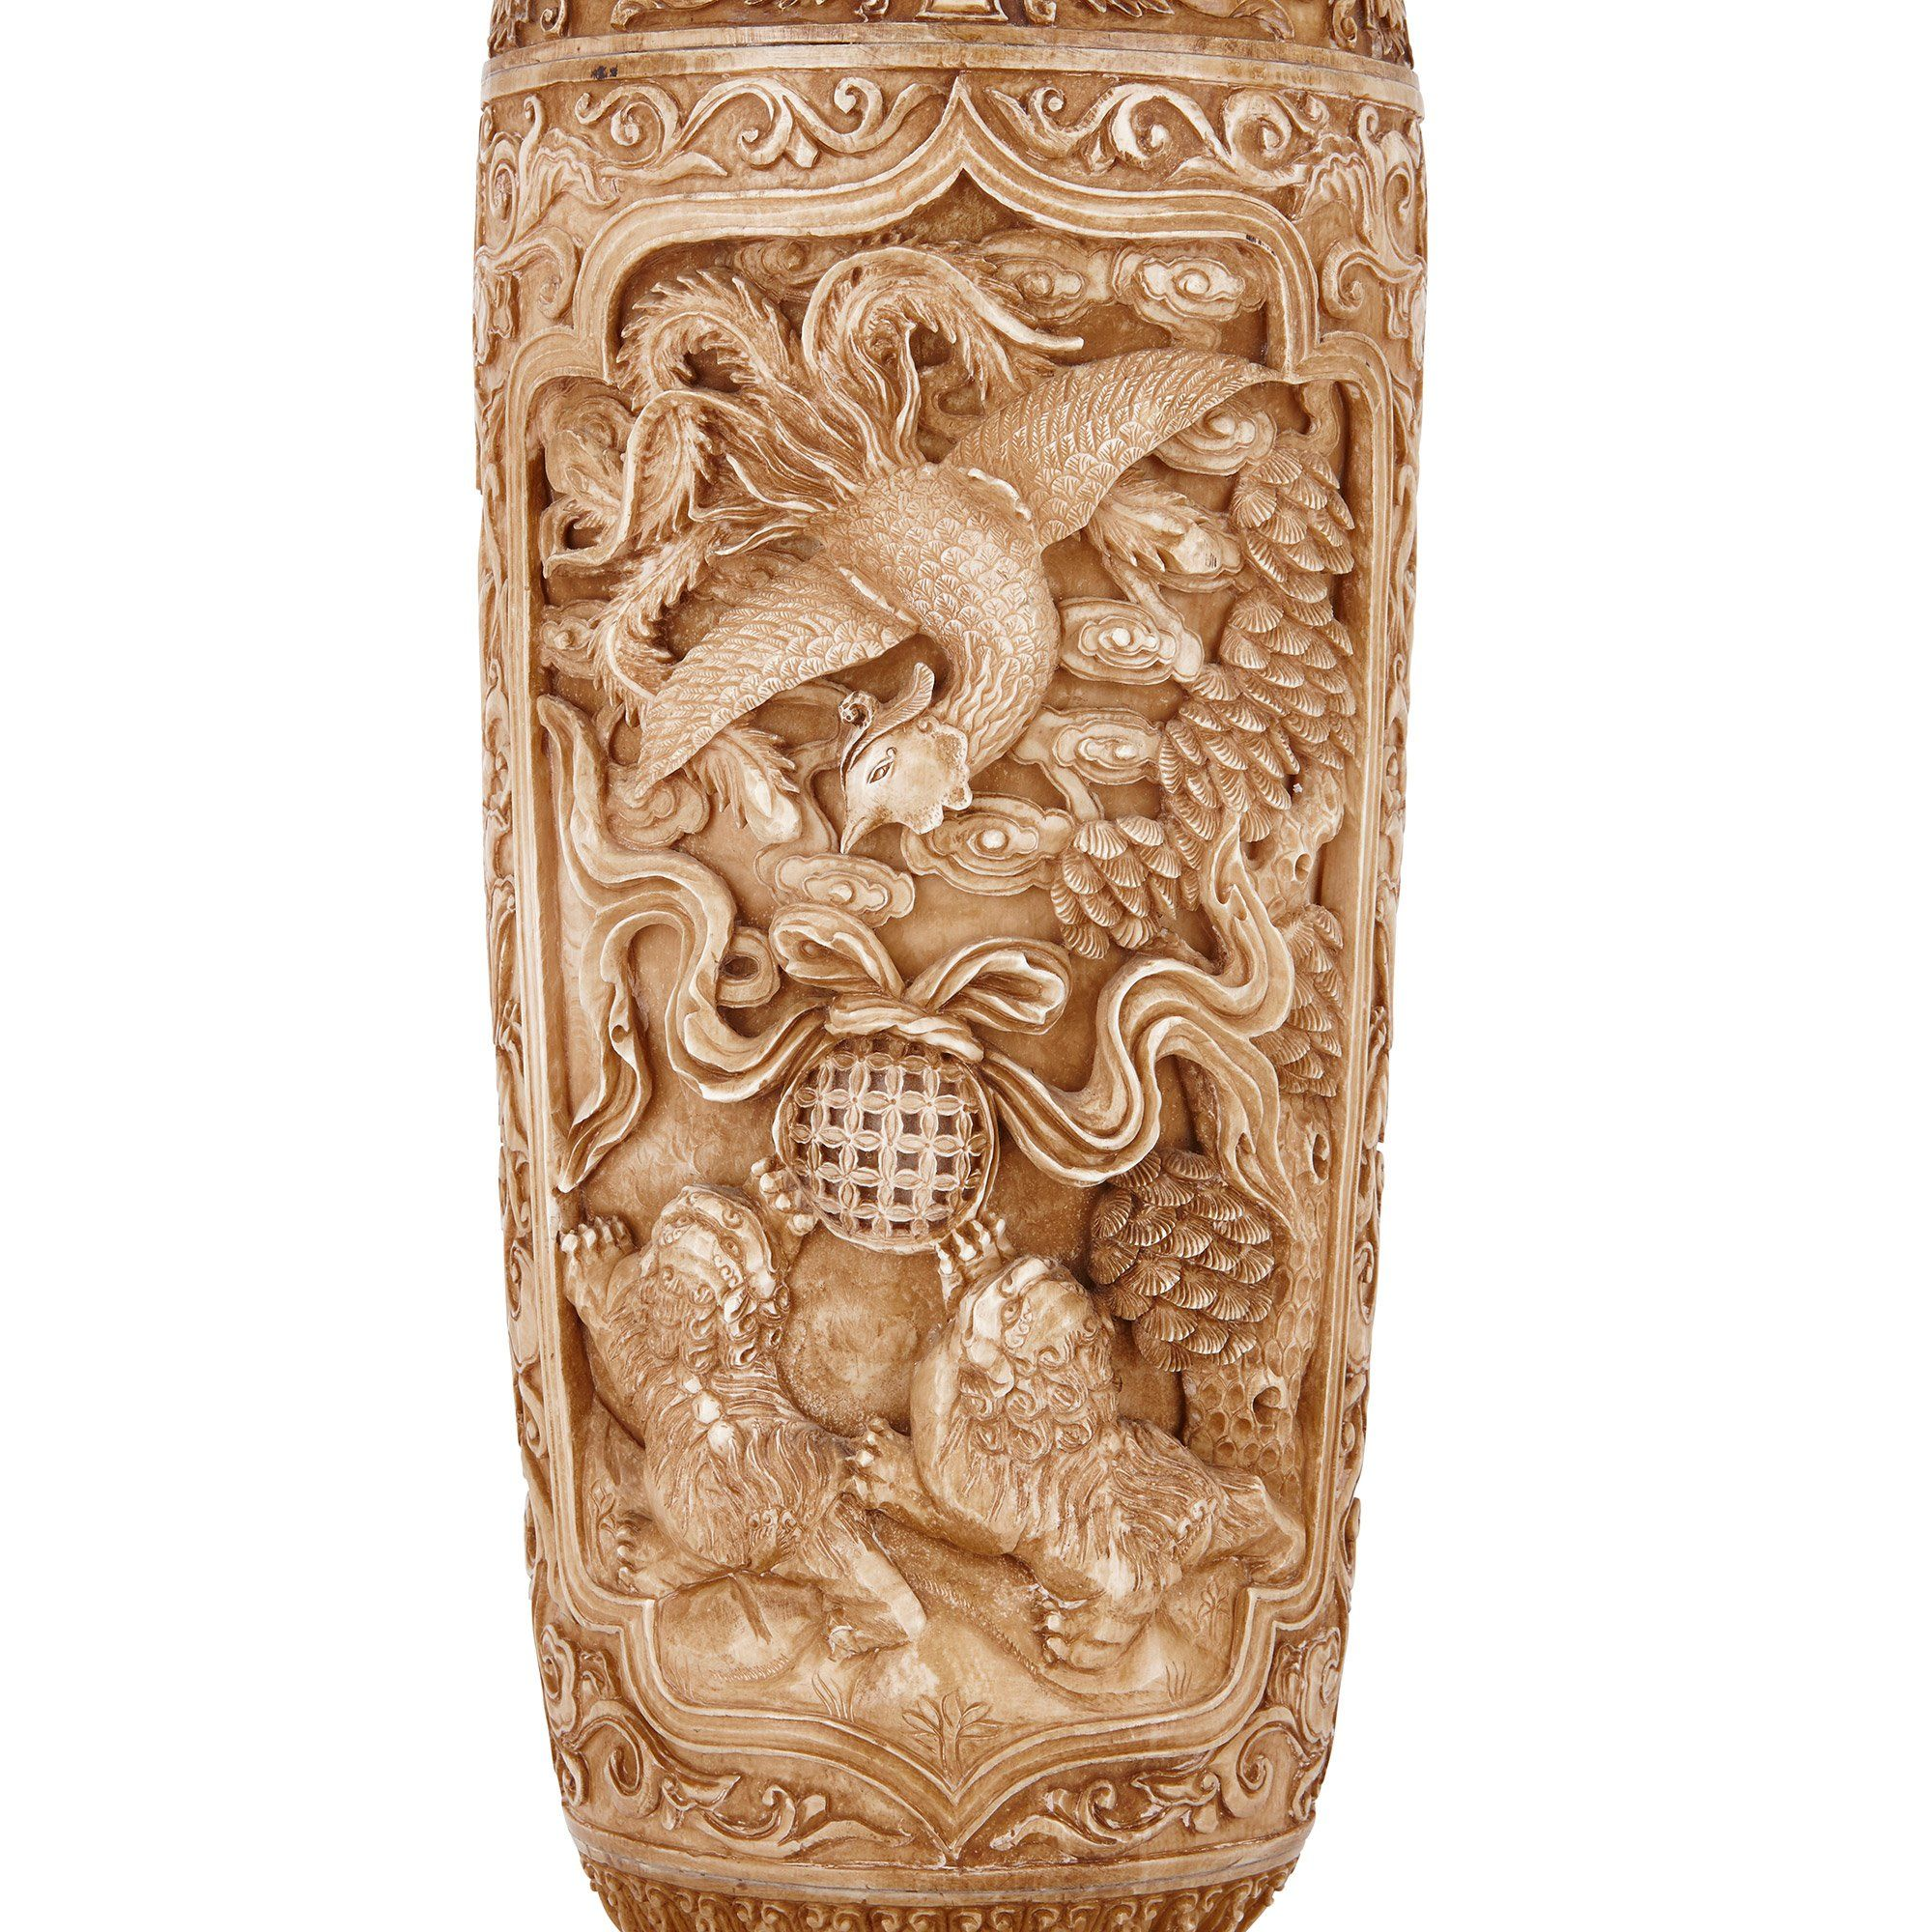 Pair Of Antique Chinese Carved Ivory Vases And Covers Mayfair Gallery